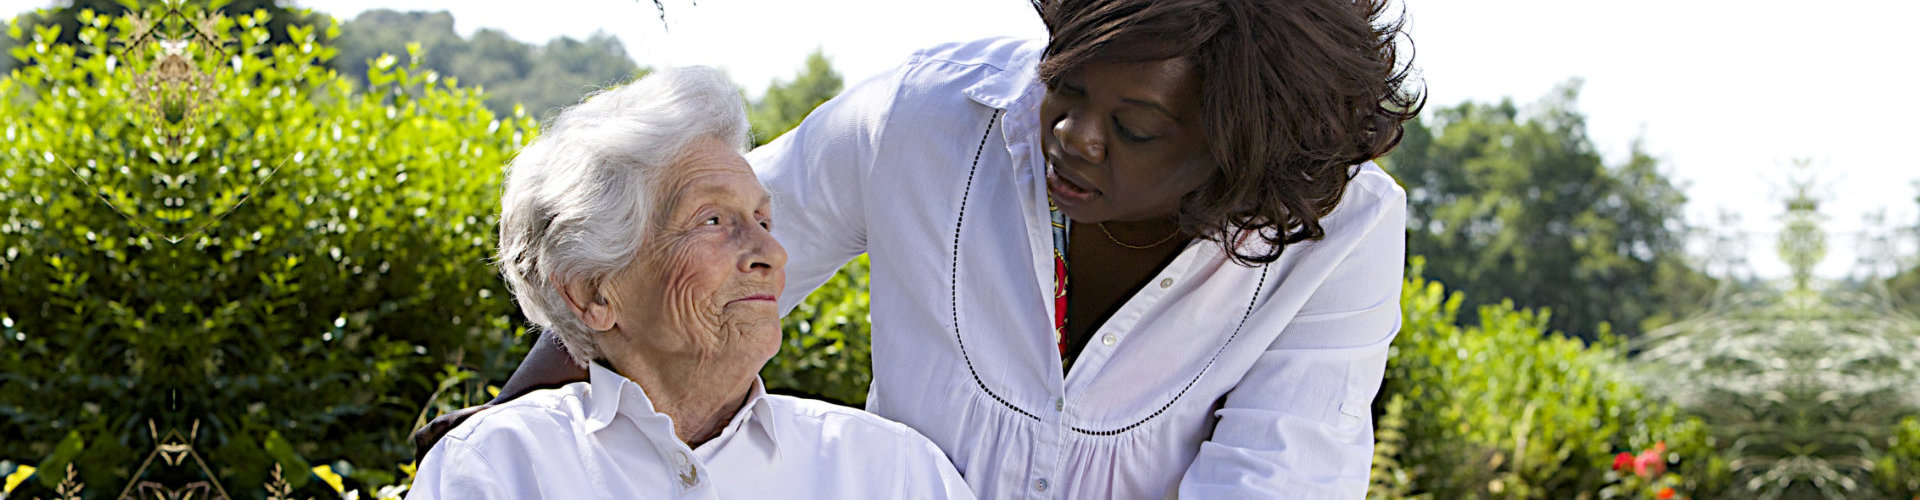 caregiver taking care of senior woman